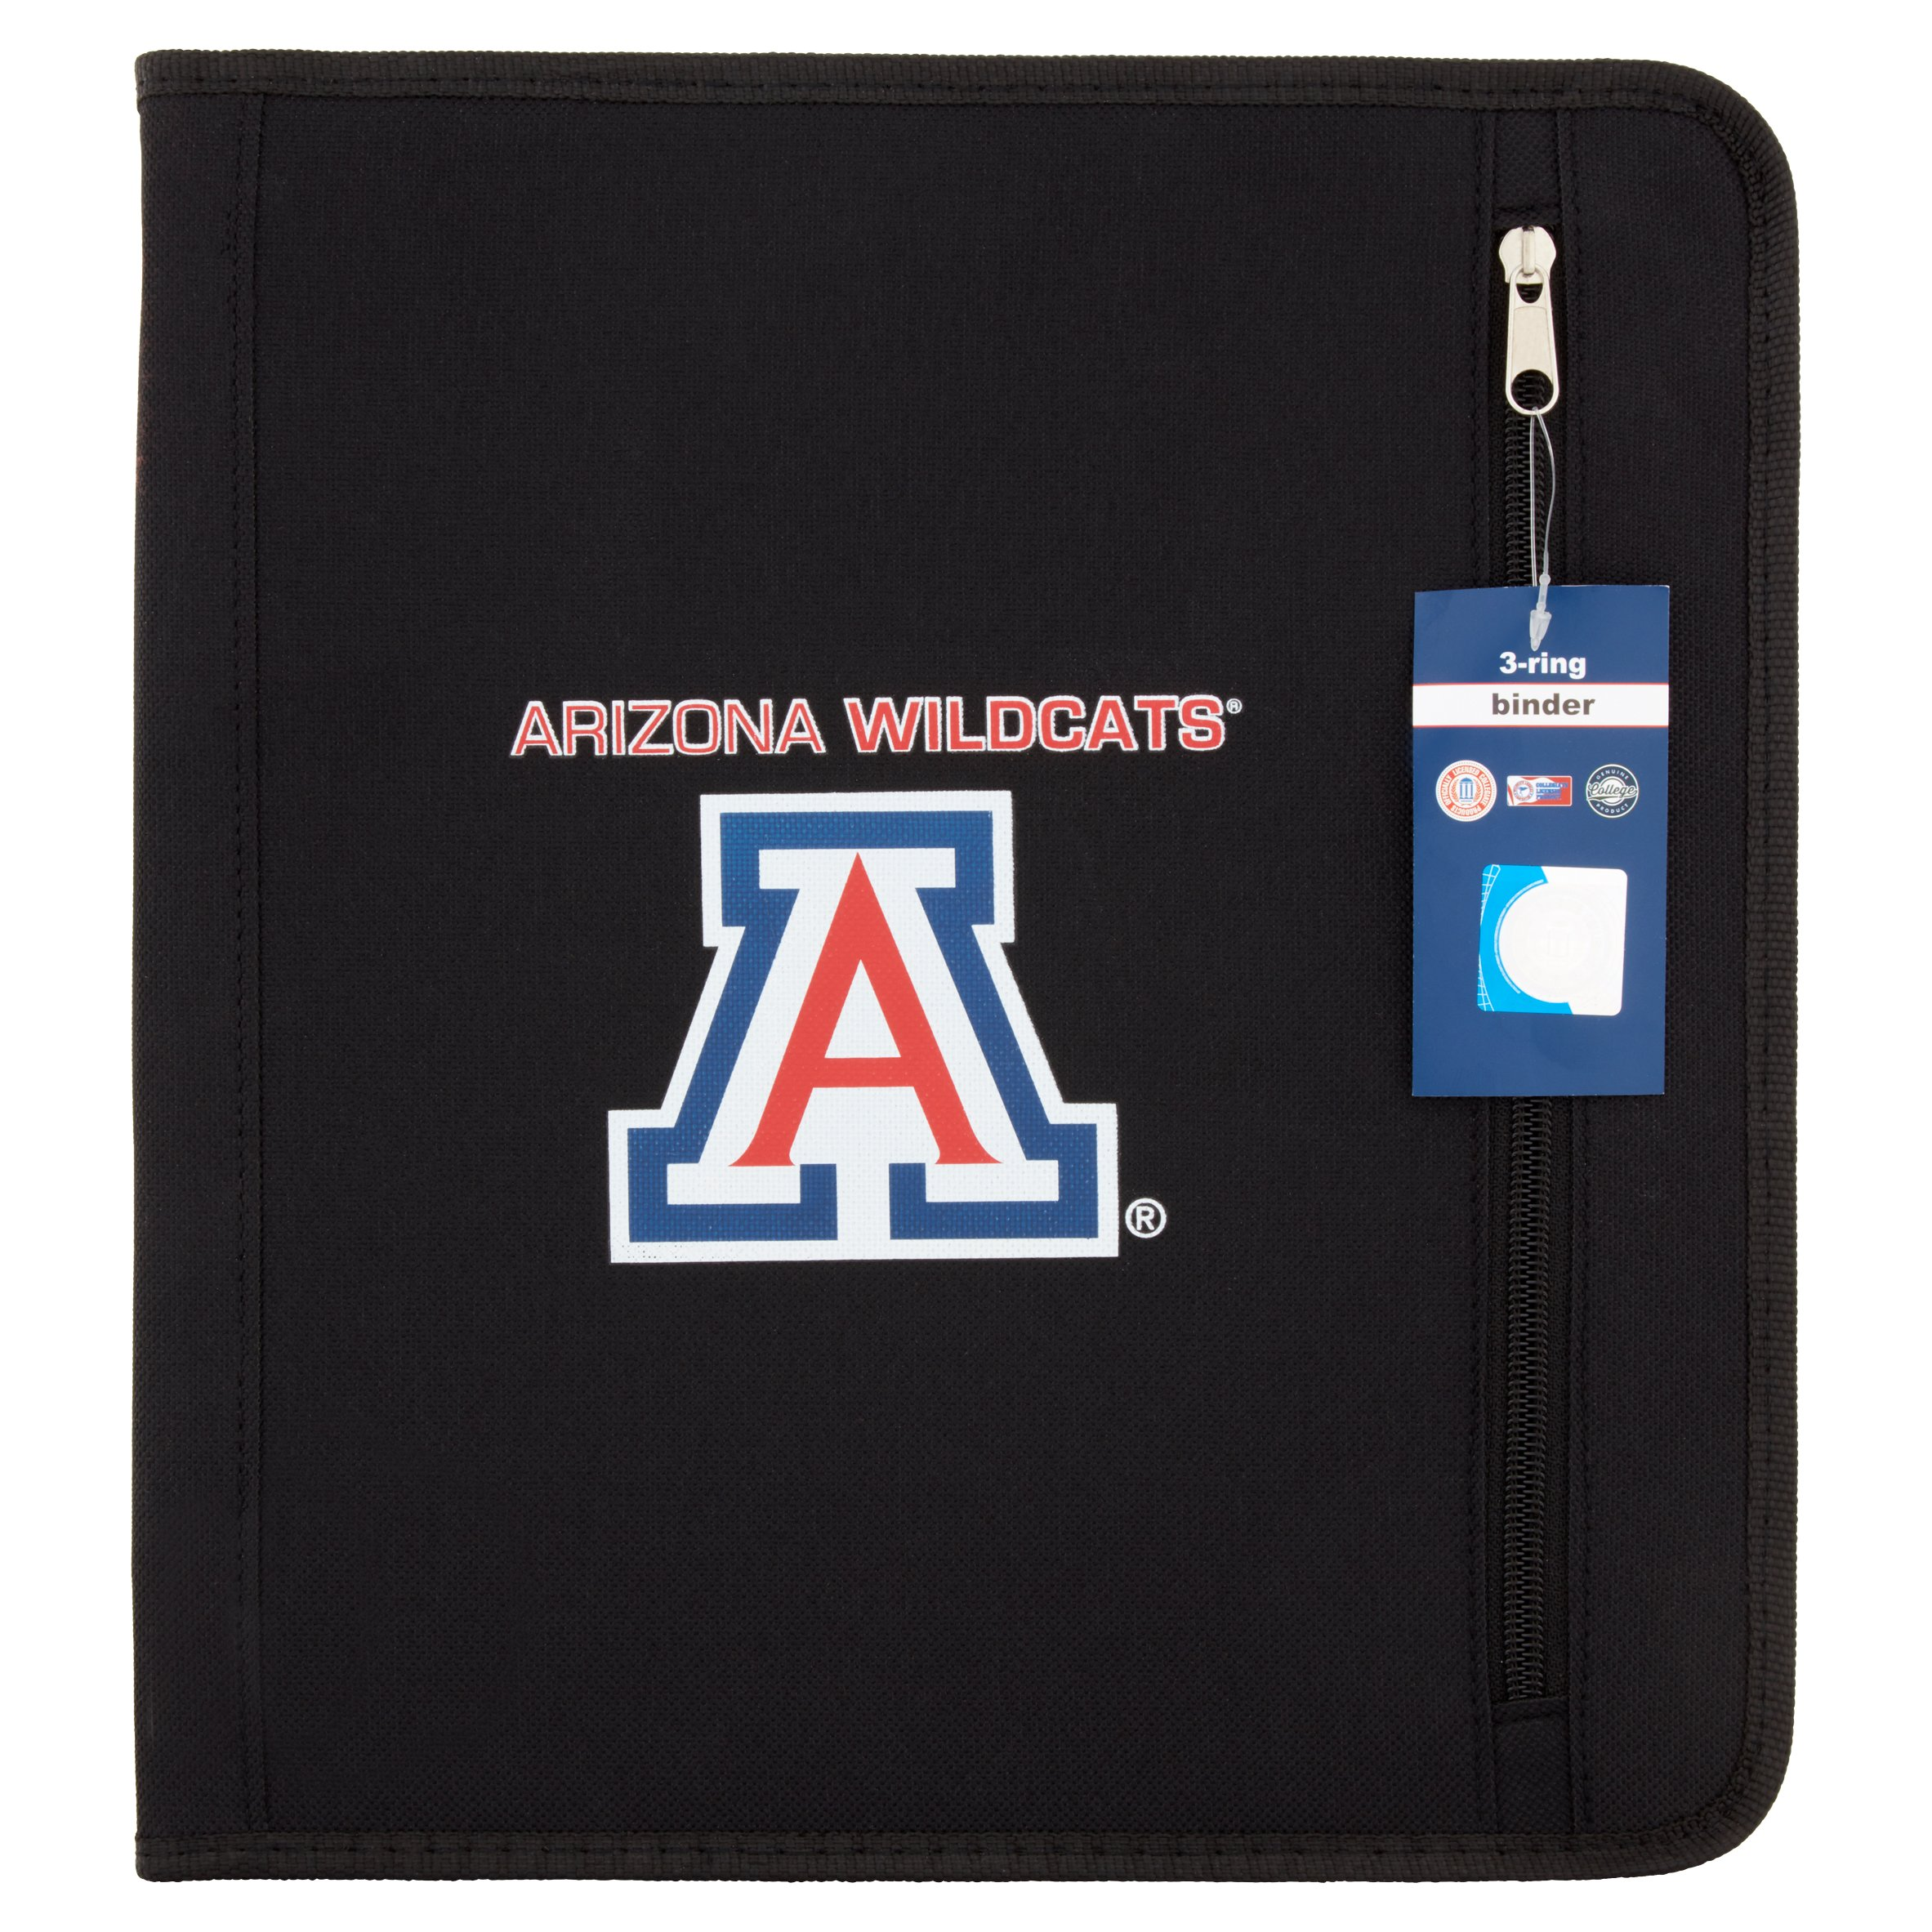 Arizona Wildcats 3-Ring Zipper Binder